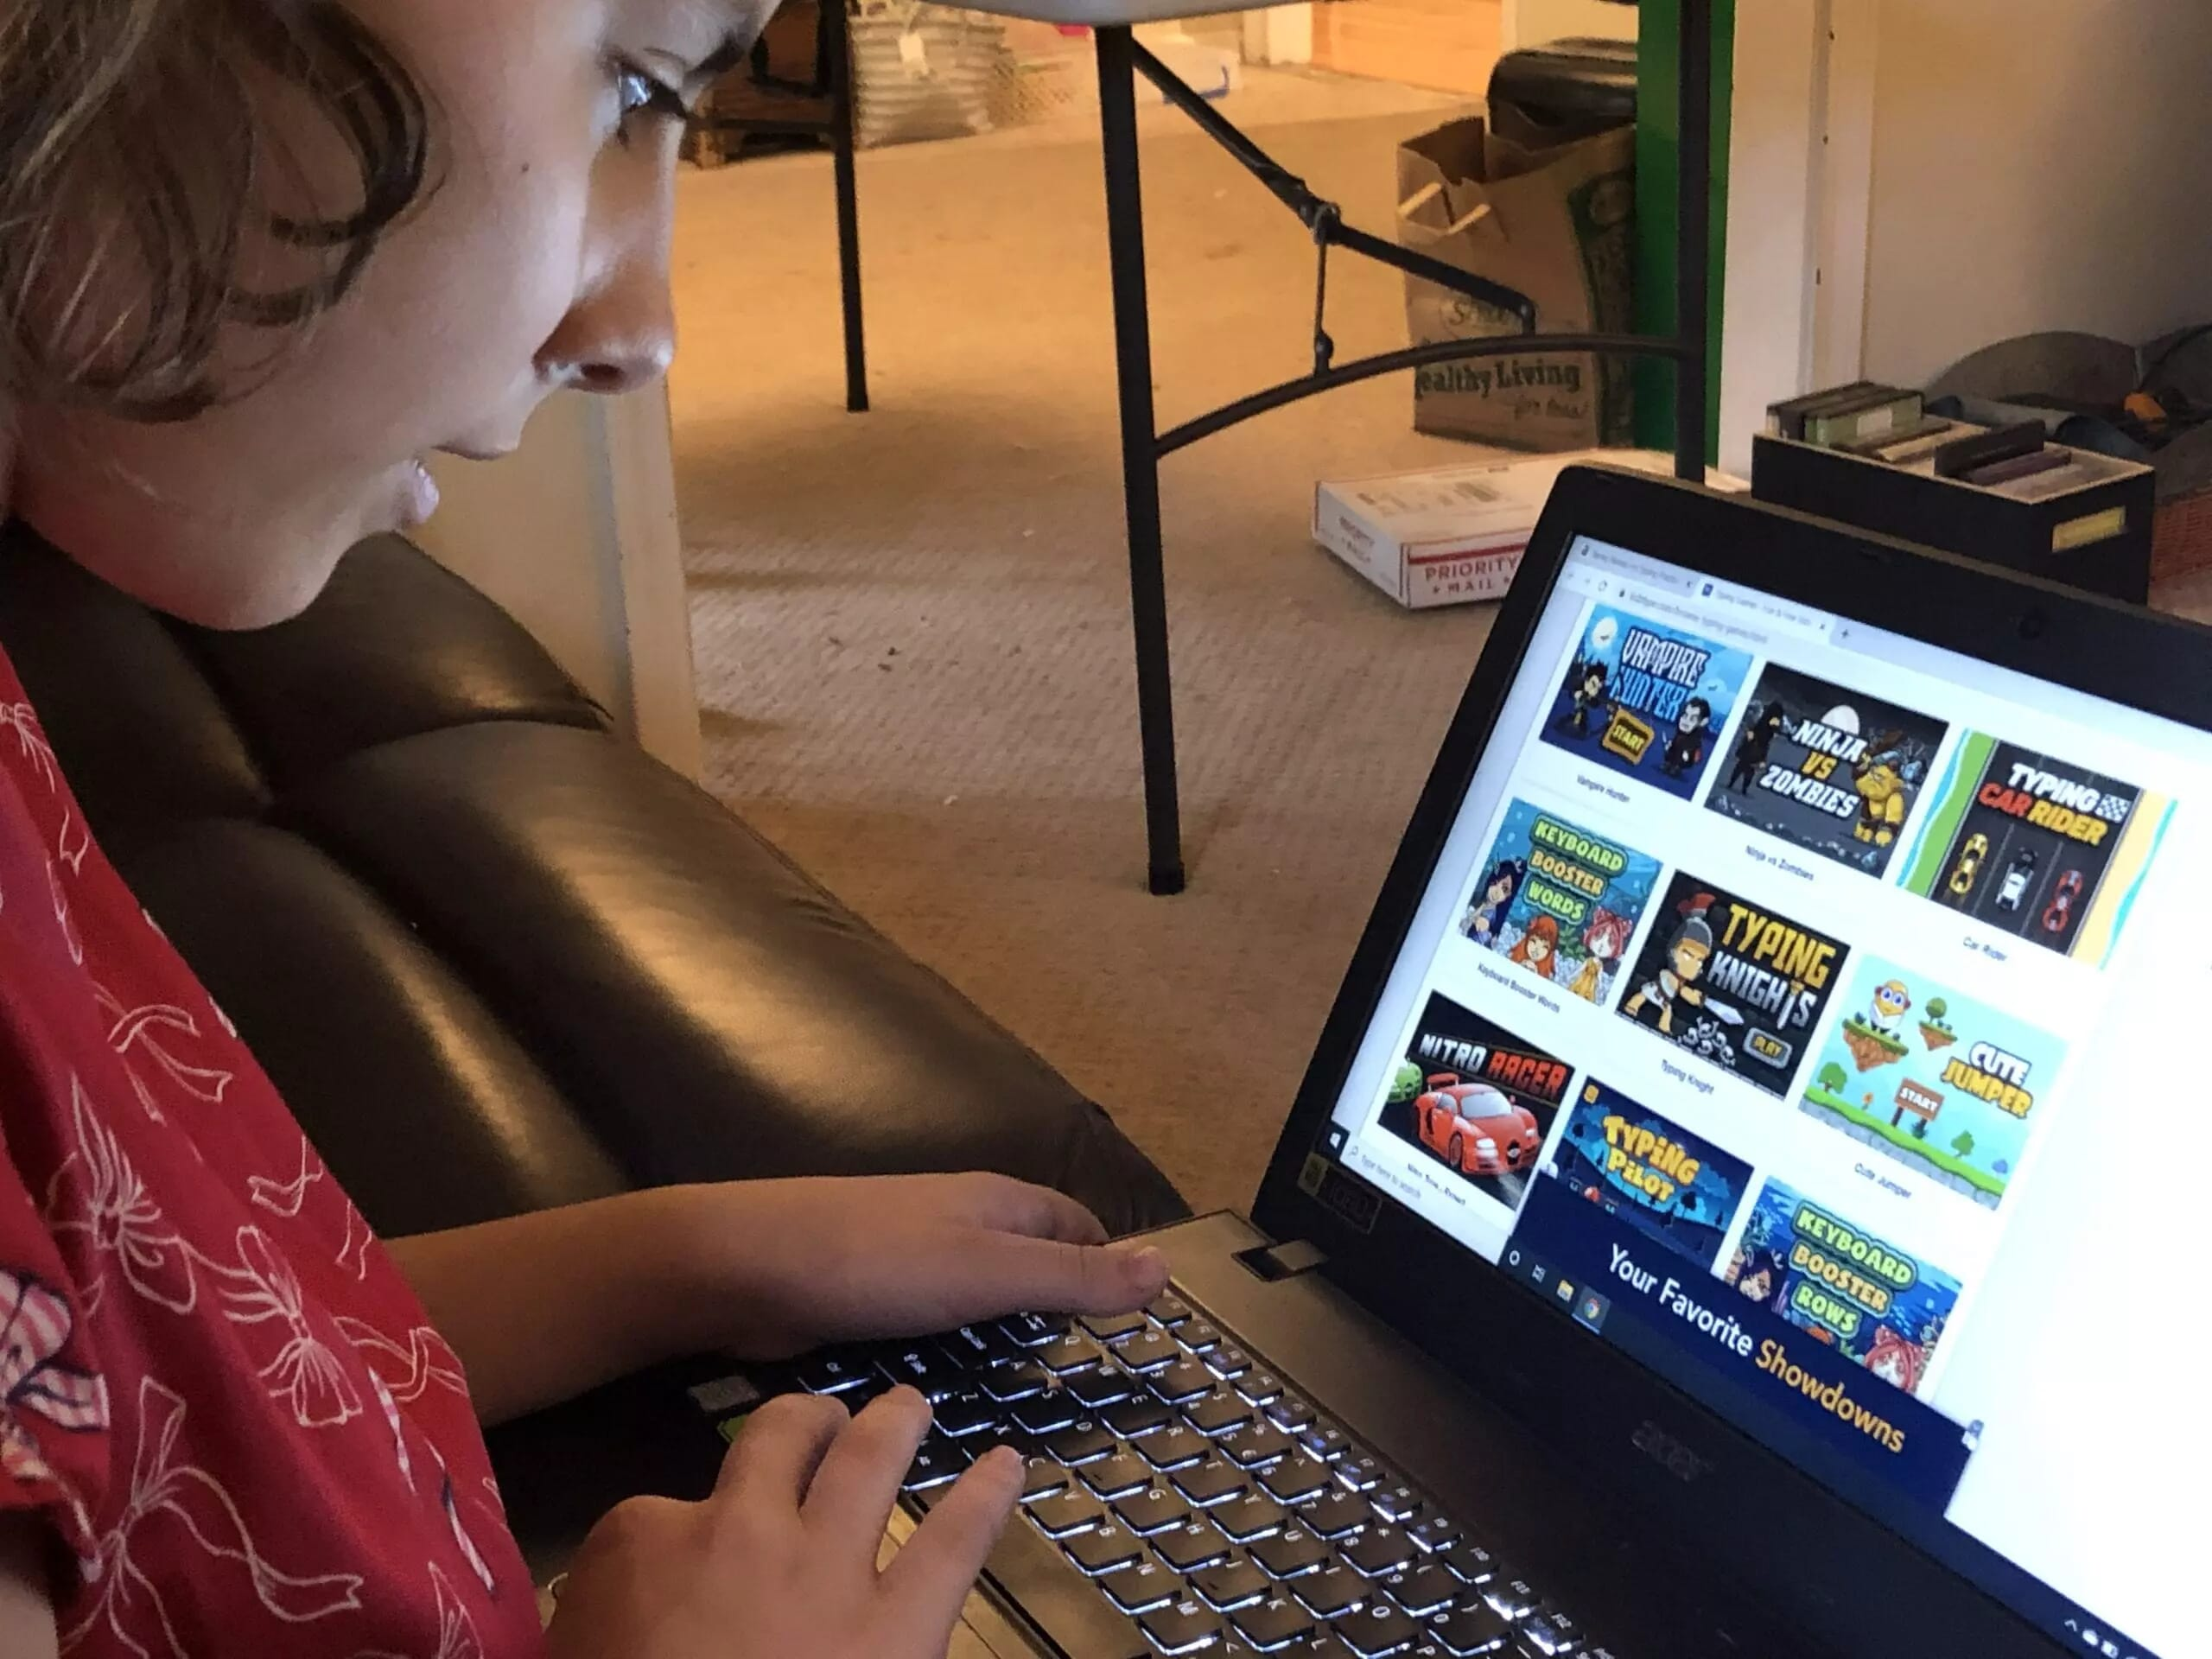 Kidztype.com has several typing games for kids.